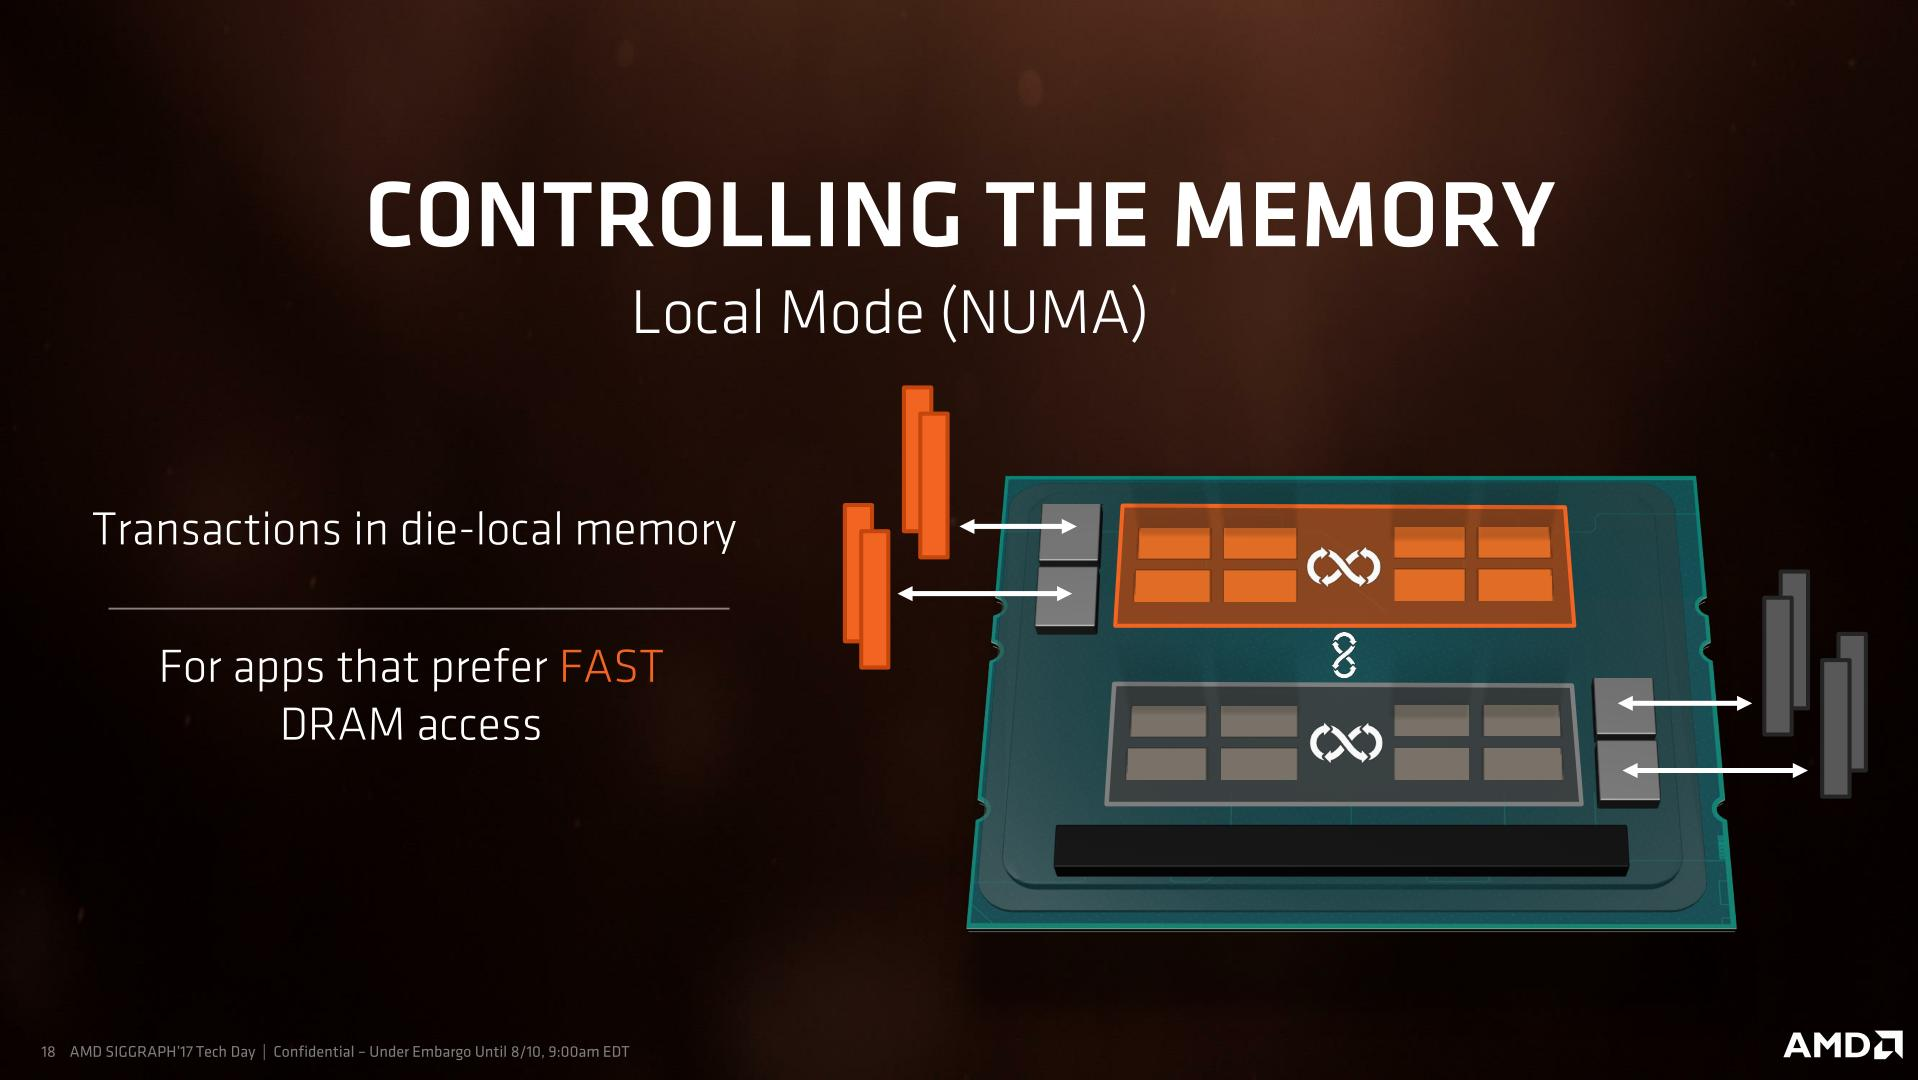 AMD's Solution to Dual Dies: Creator Mode and Game Mode